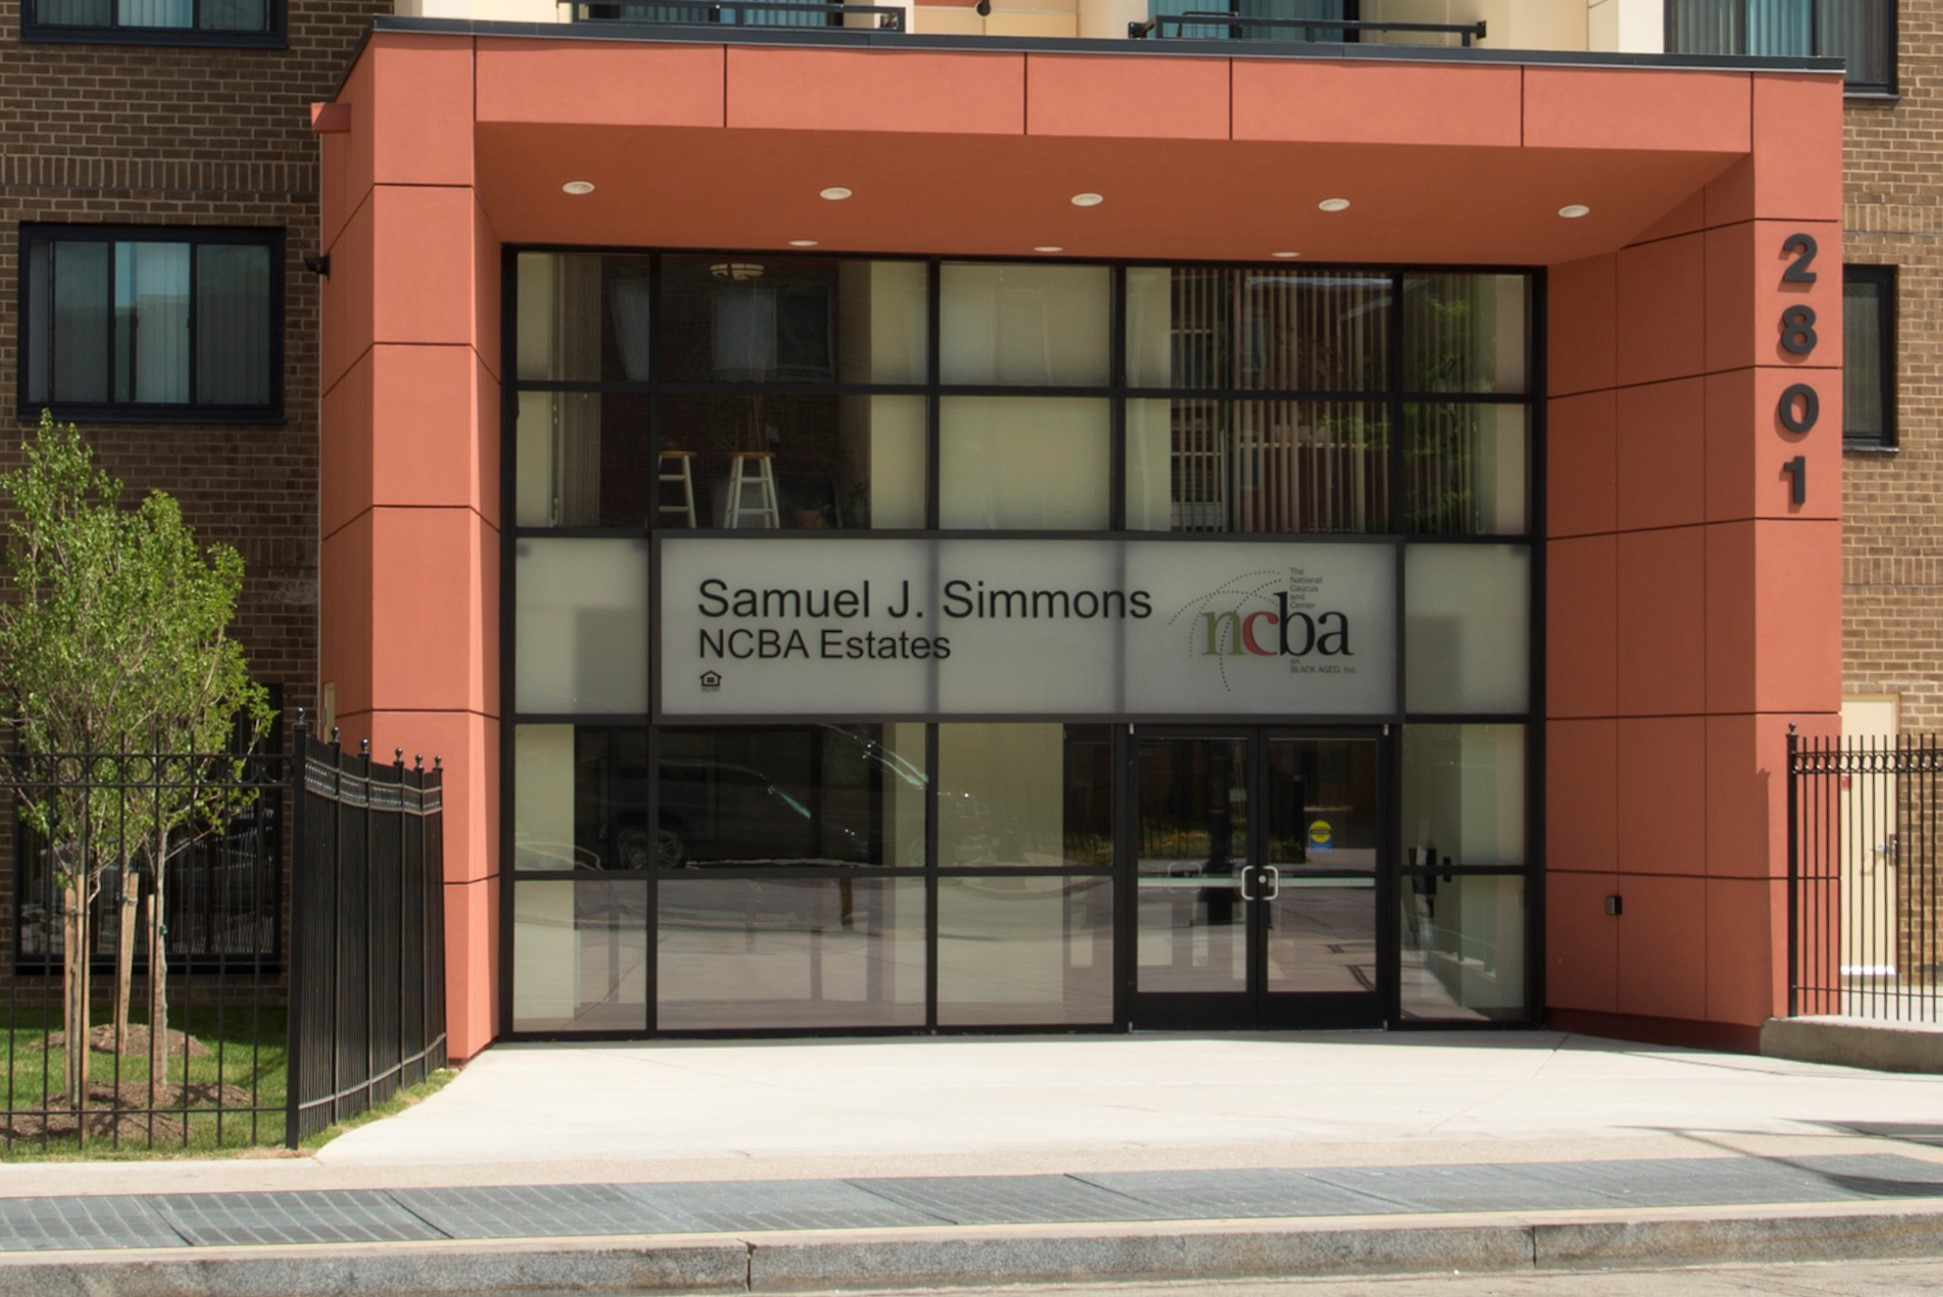 SAMUEL J. SIMMONS NCBA ESTATES